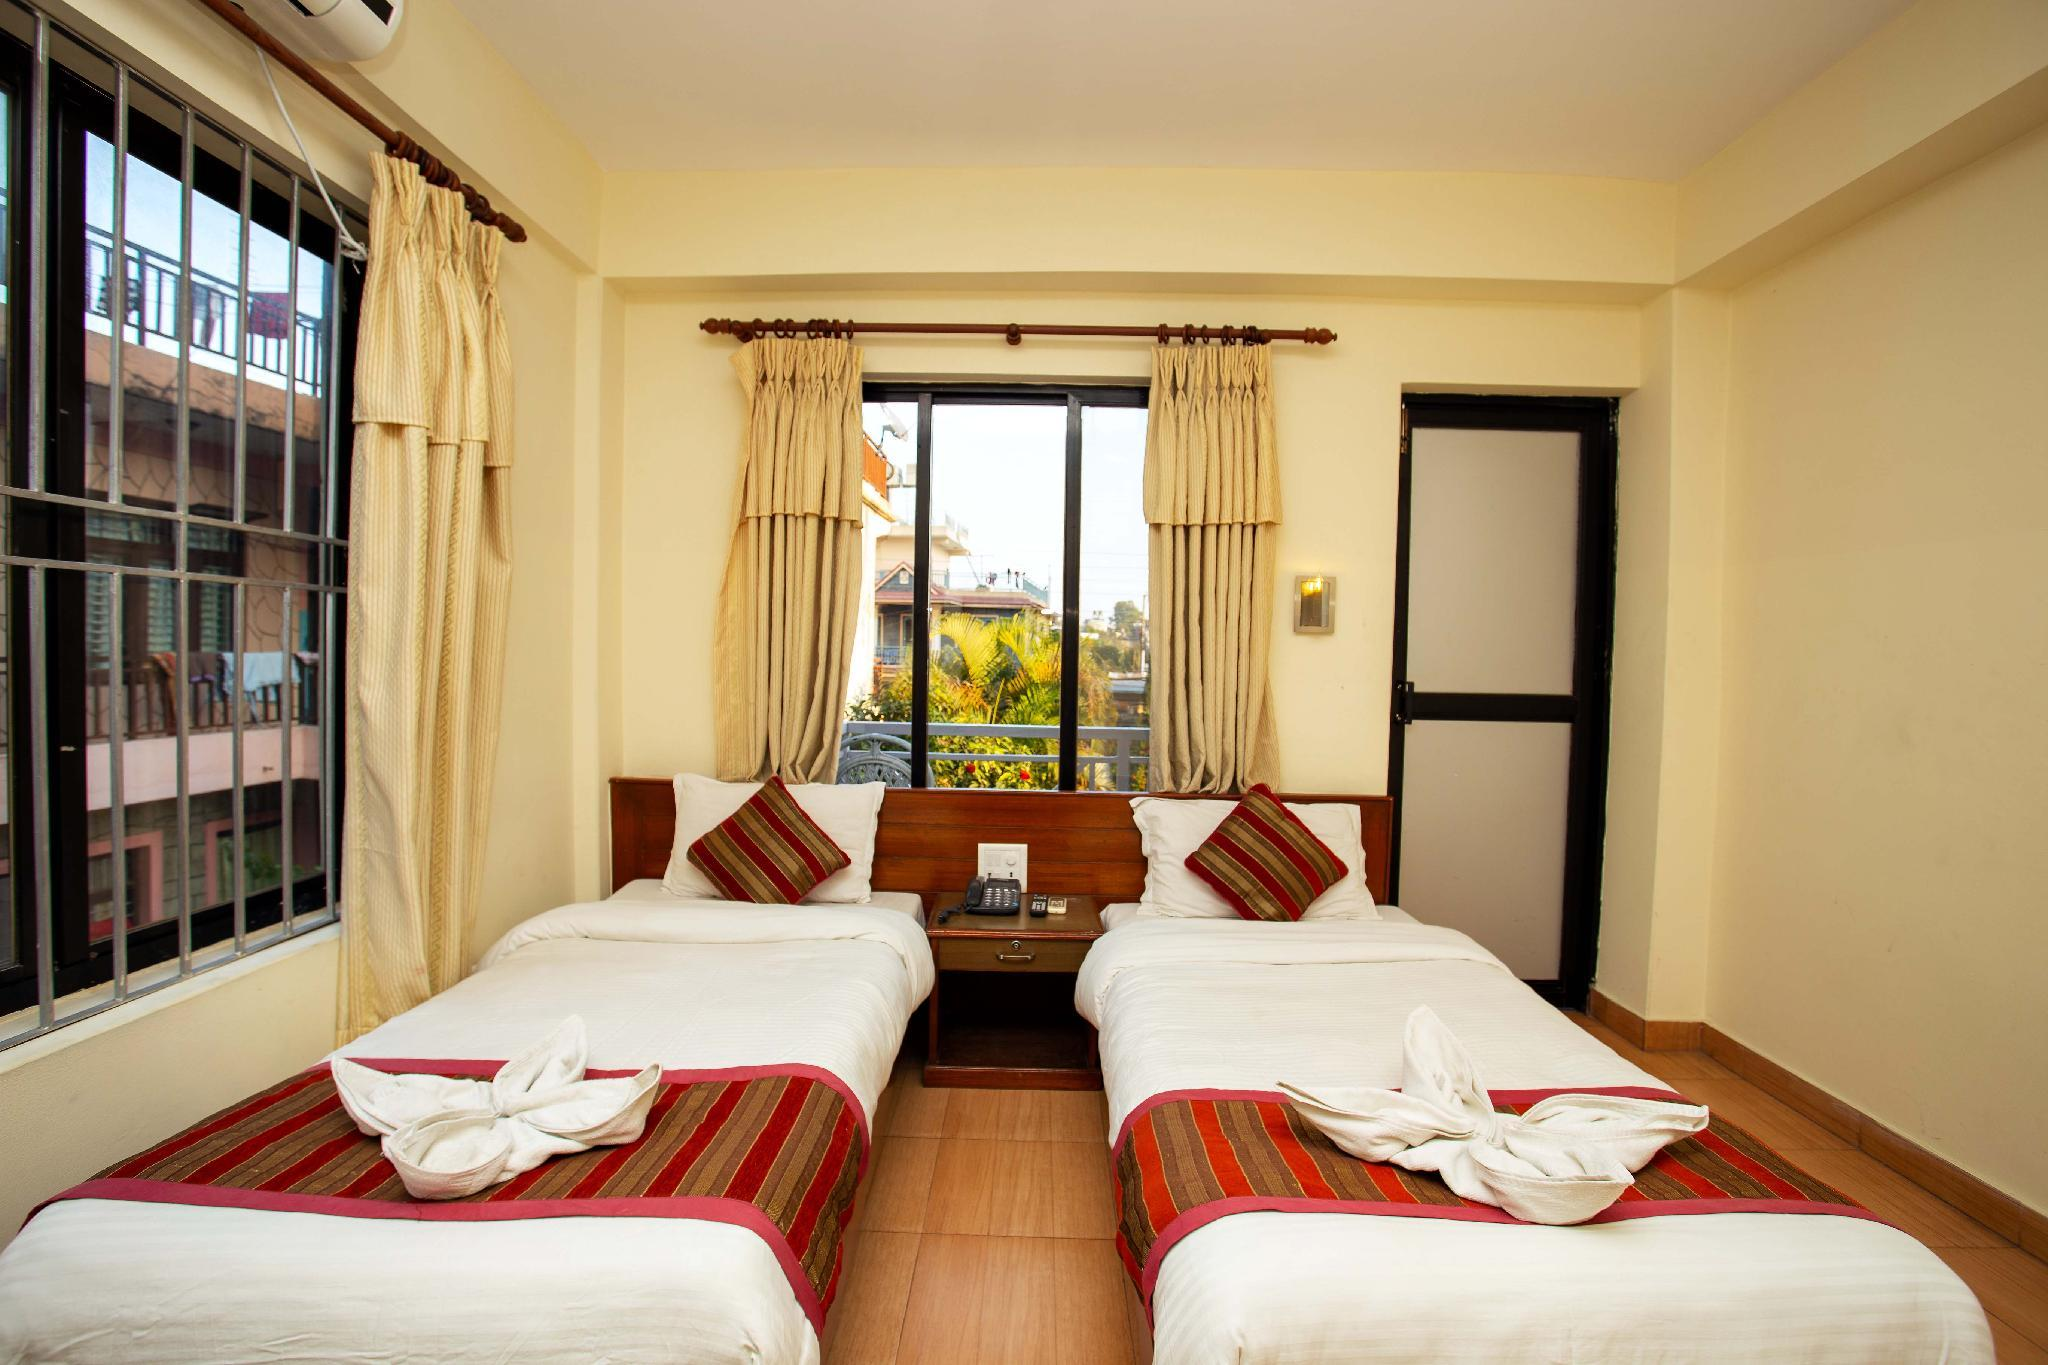 Deluxe Room With Private Balcony